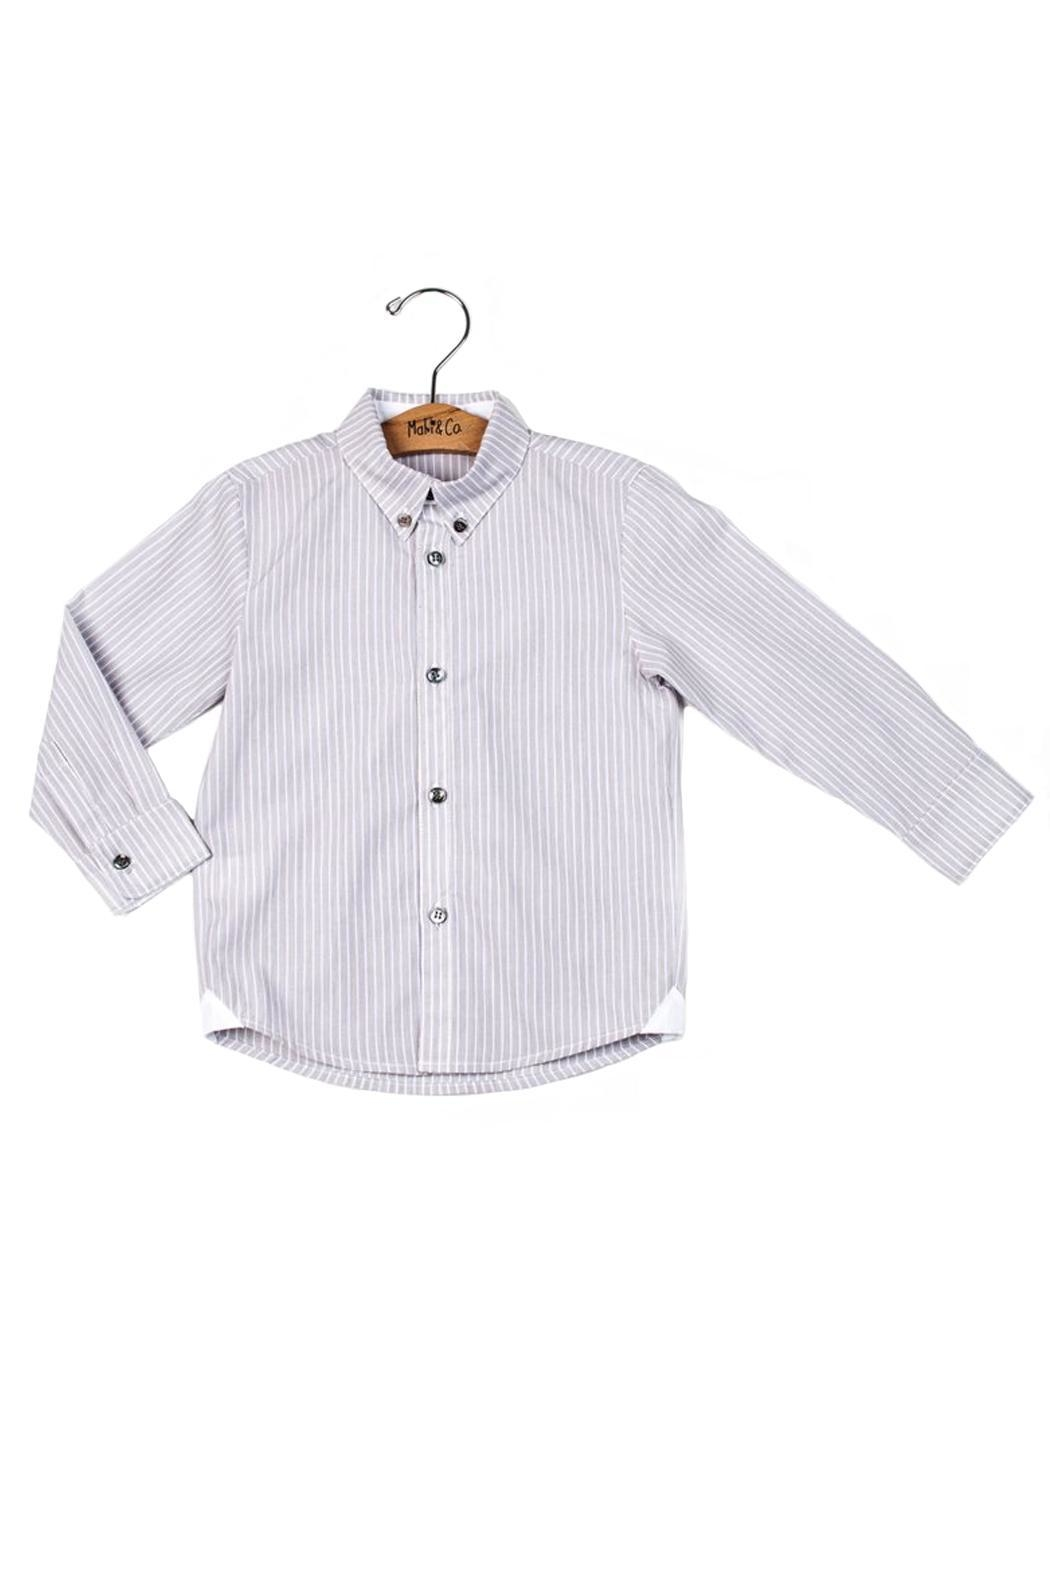 Malvi & Co. Ecru Striped Shirt. - Main Image